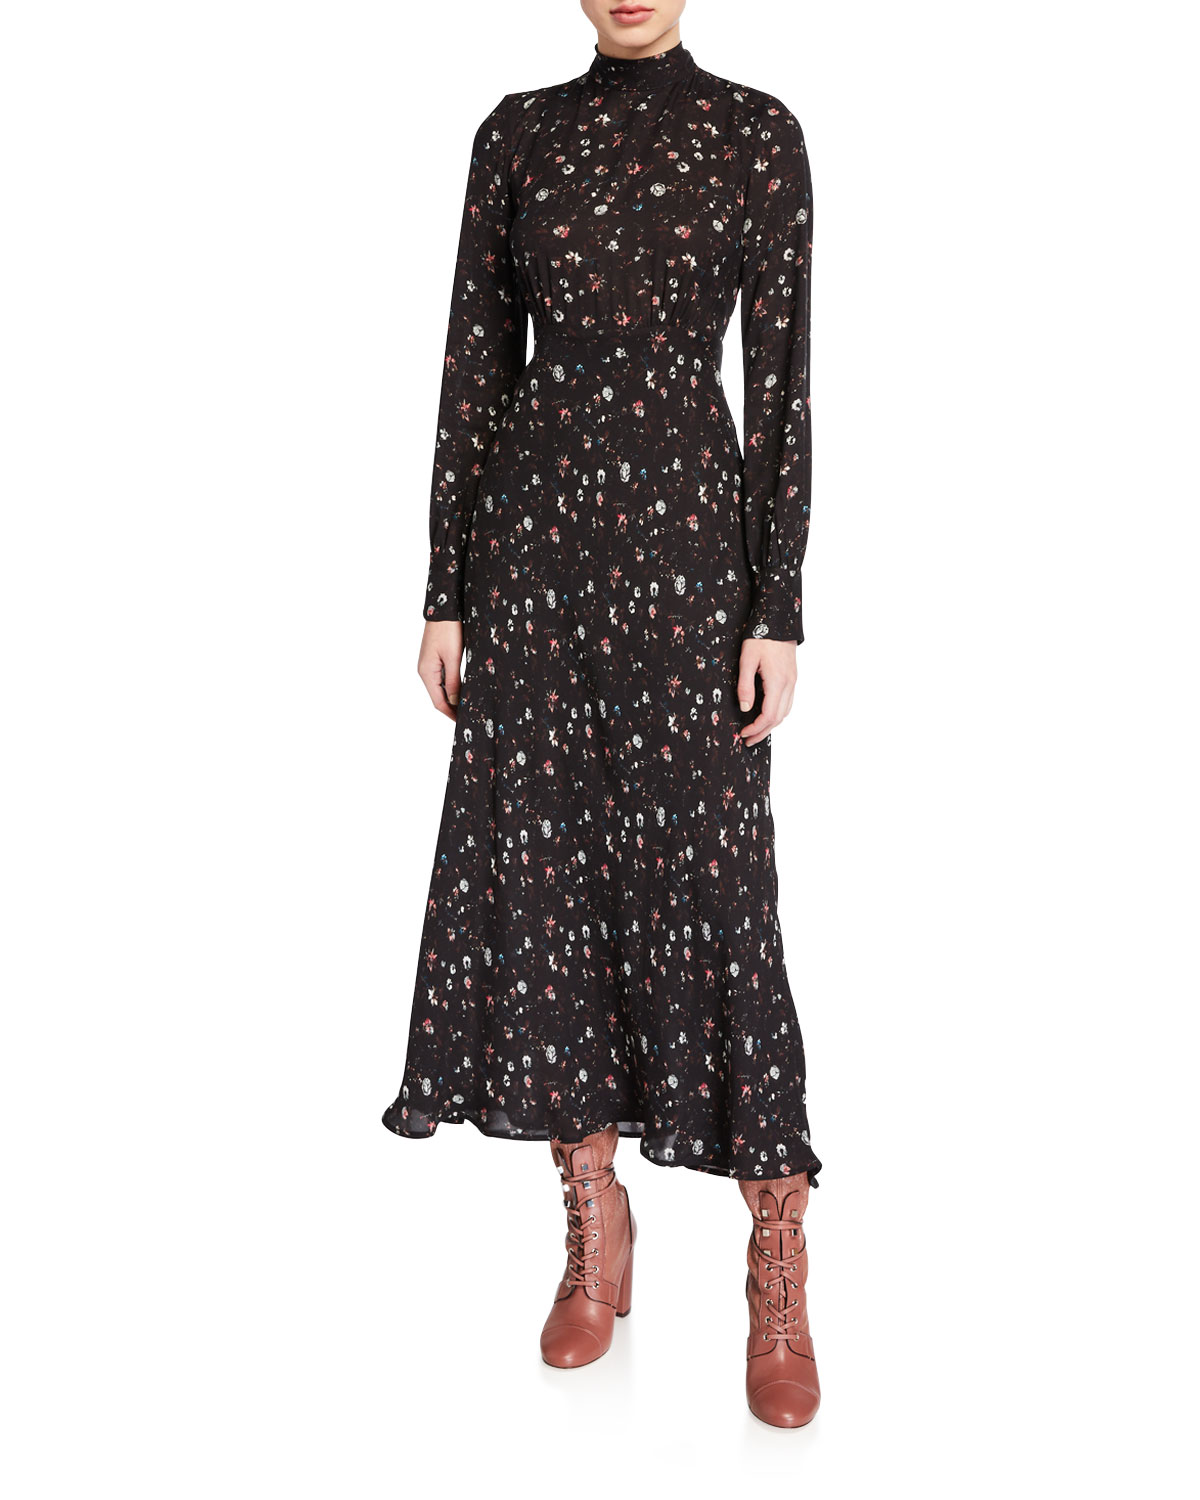 Iro Dresses CASUAL HIGH-NECK FLORAL LONG-SLEEVE DRESS